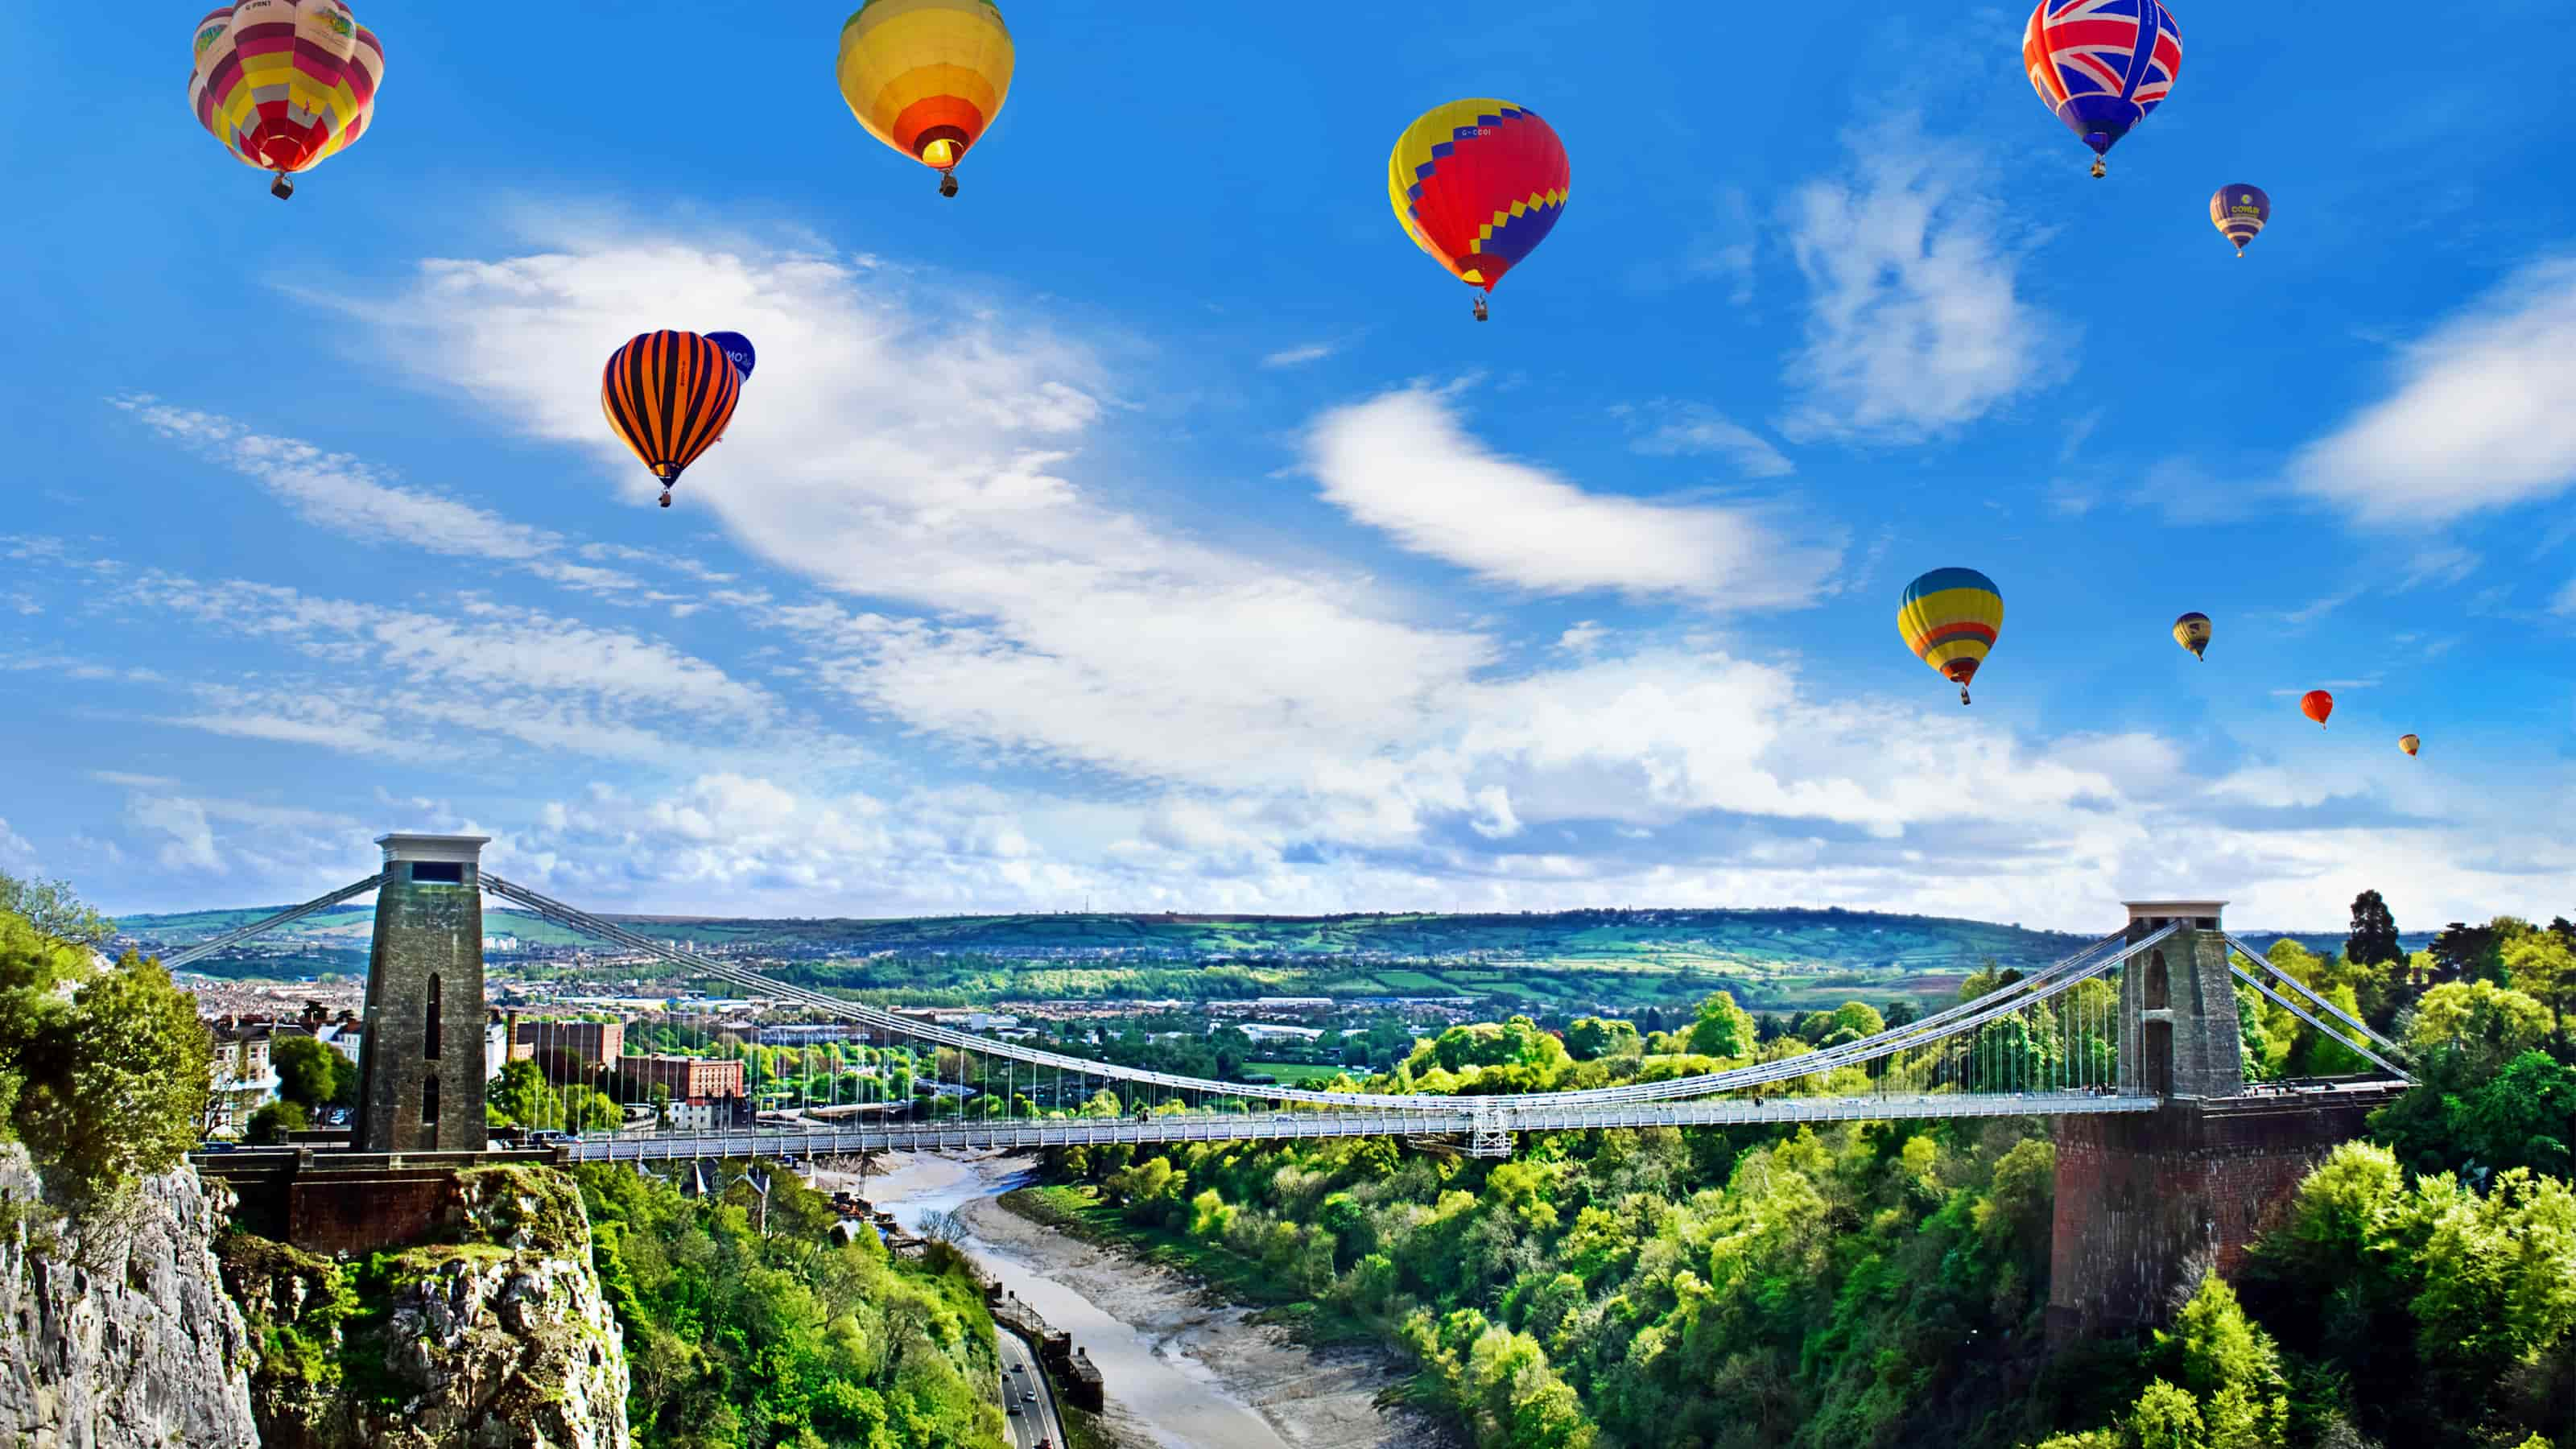 Bristol, a town in England. With so many things to do and see it's easy for an itinerary of Bristol to be made simple!